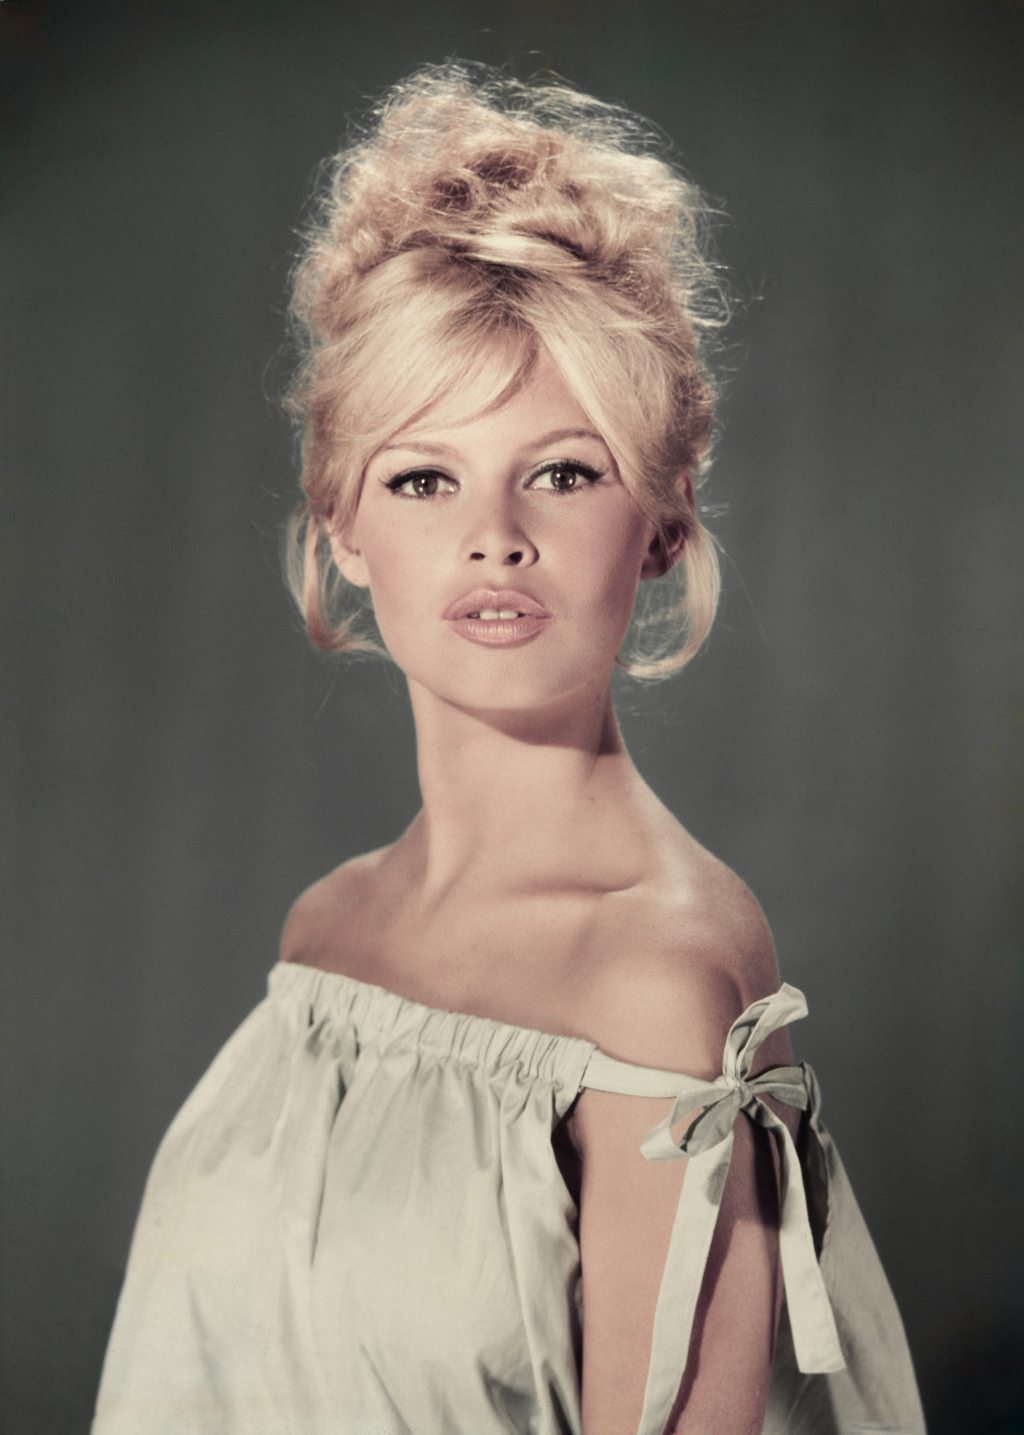 circa 1960: Studio portrait of actor and model Brigitte Bardot wearing a light blue off-the-shoulder dress. (Photo by Hulton Archive/Getty Images)